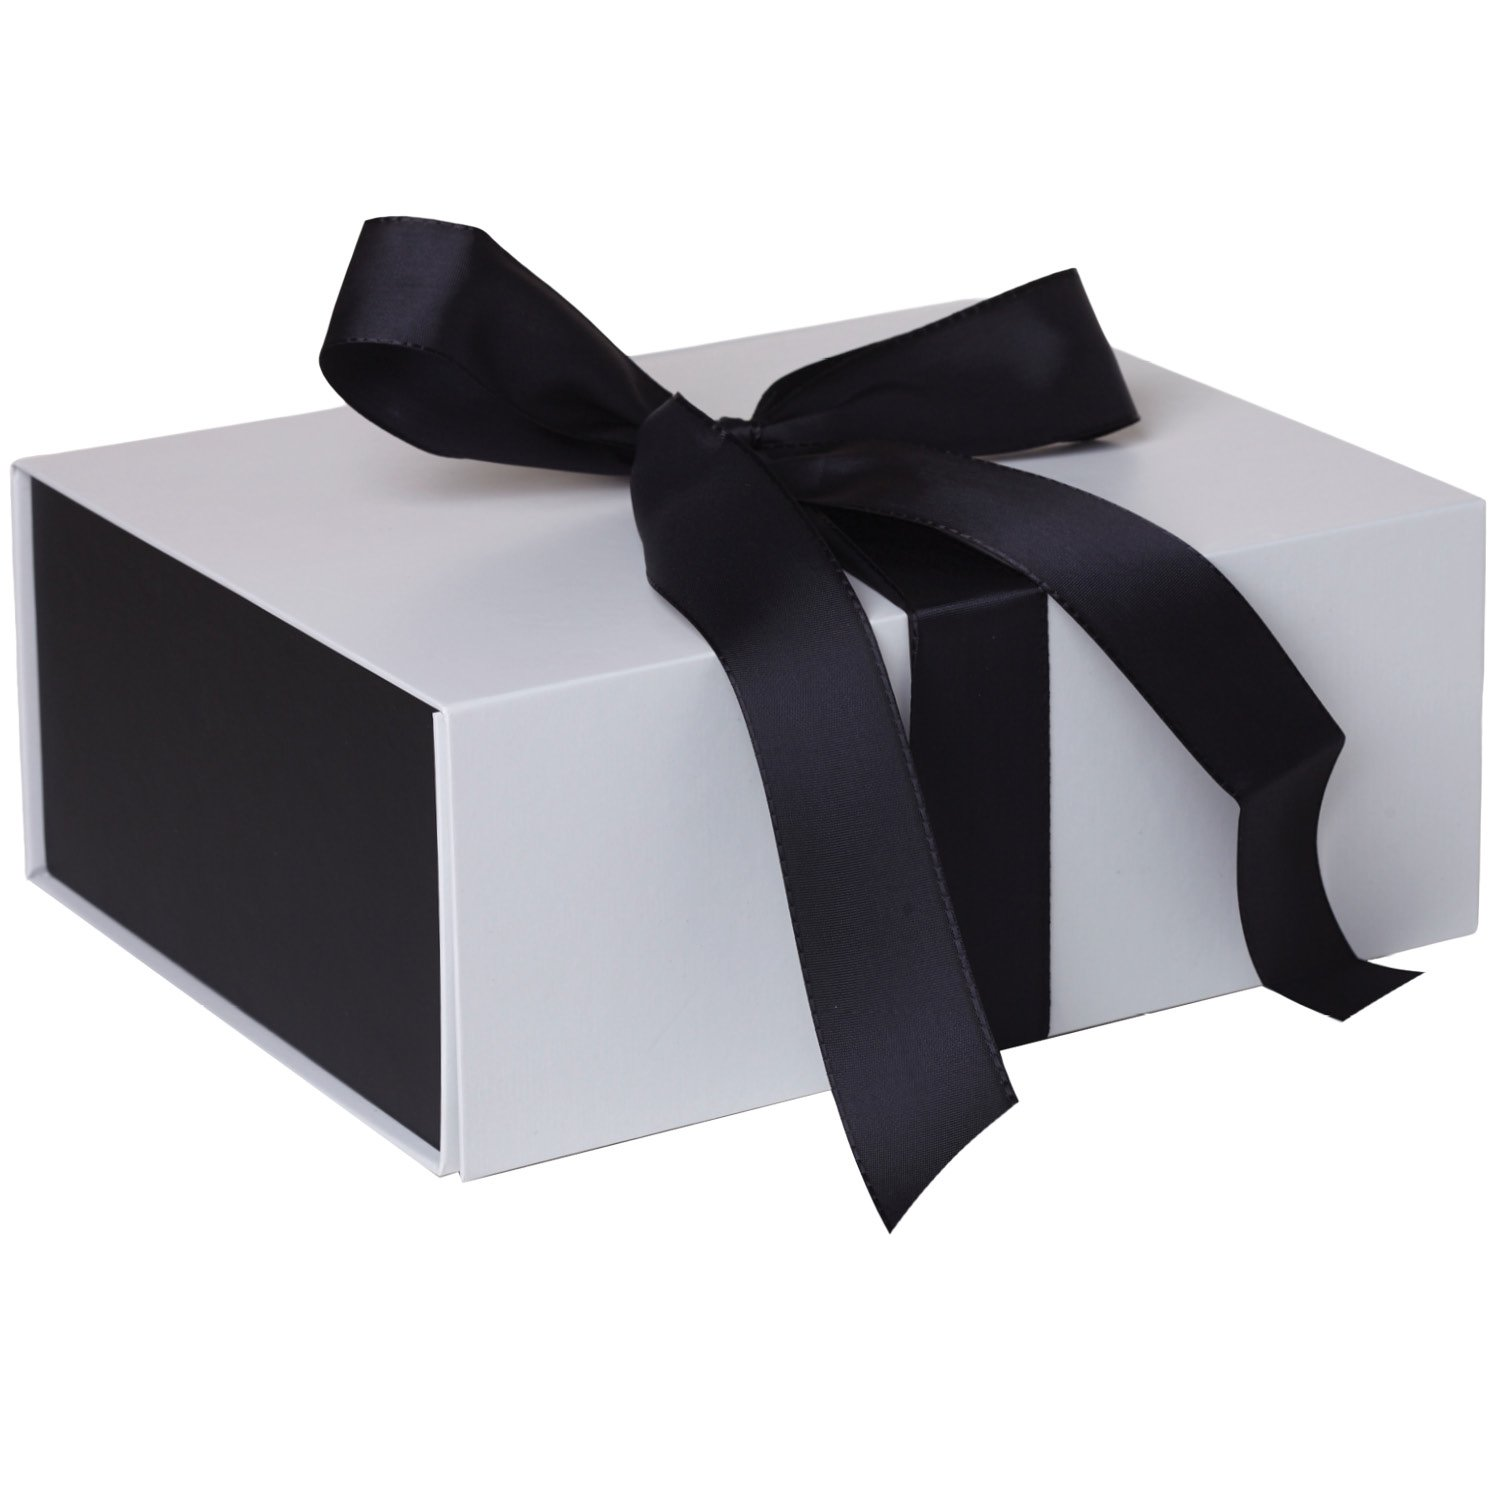 Jillson Roberts 36-Count Medium Ribbon-Tie Gift Boxes Available in 4 Colors, White Matte with Black Ribbon by Jillson Roberts